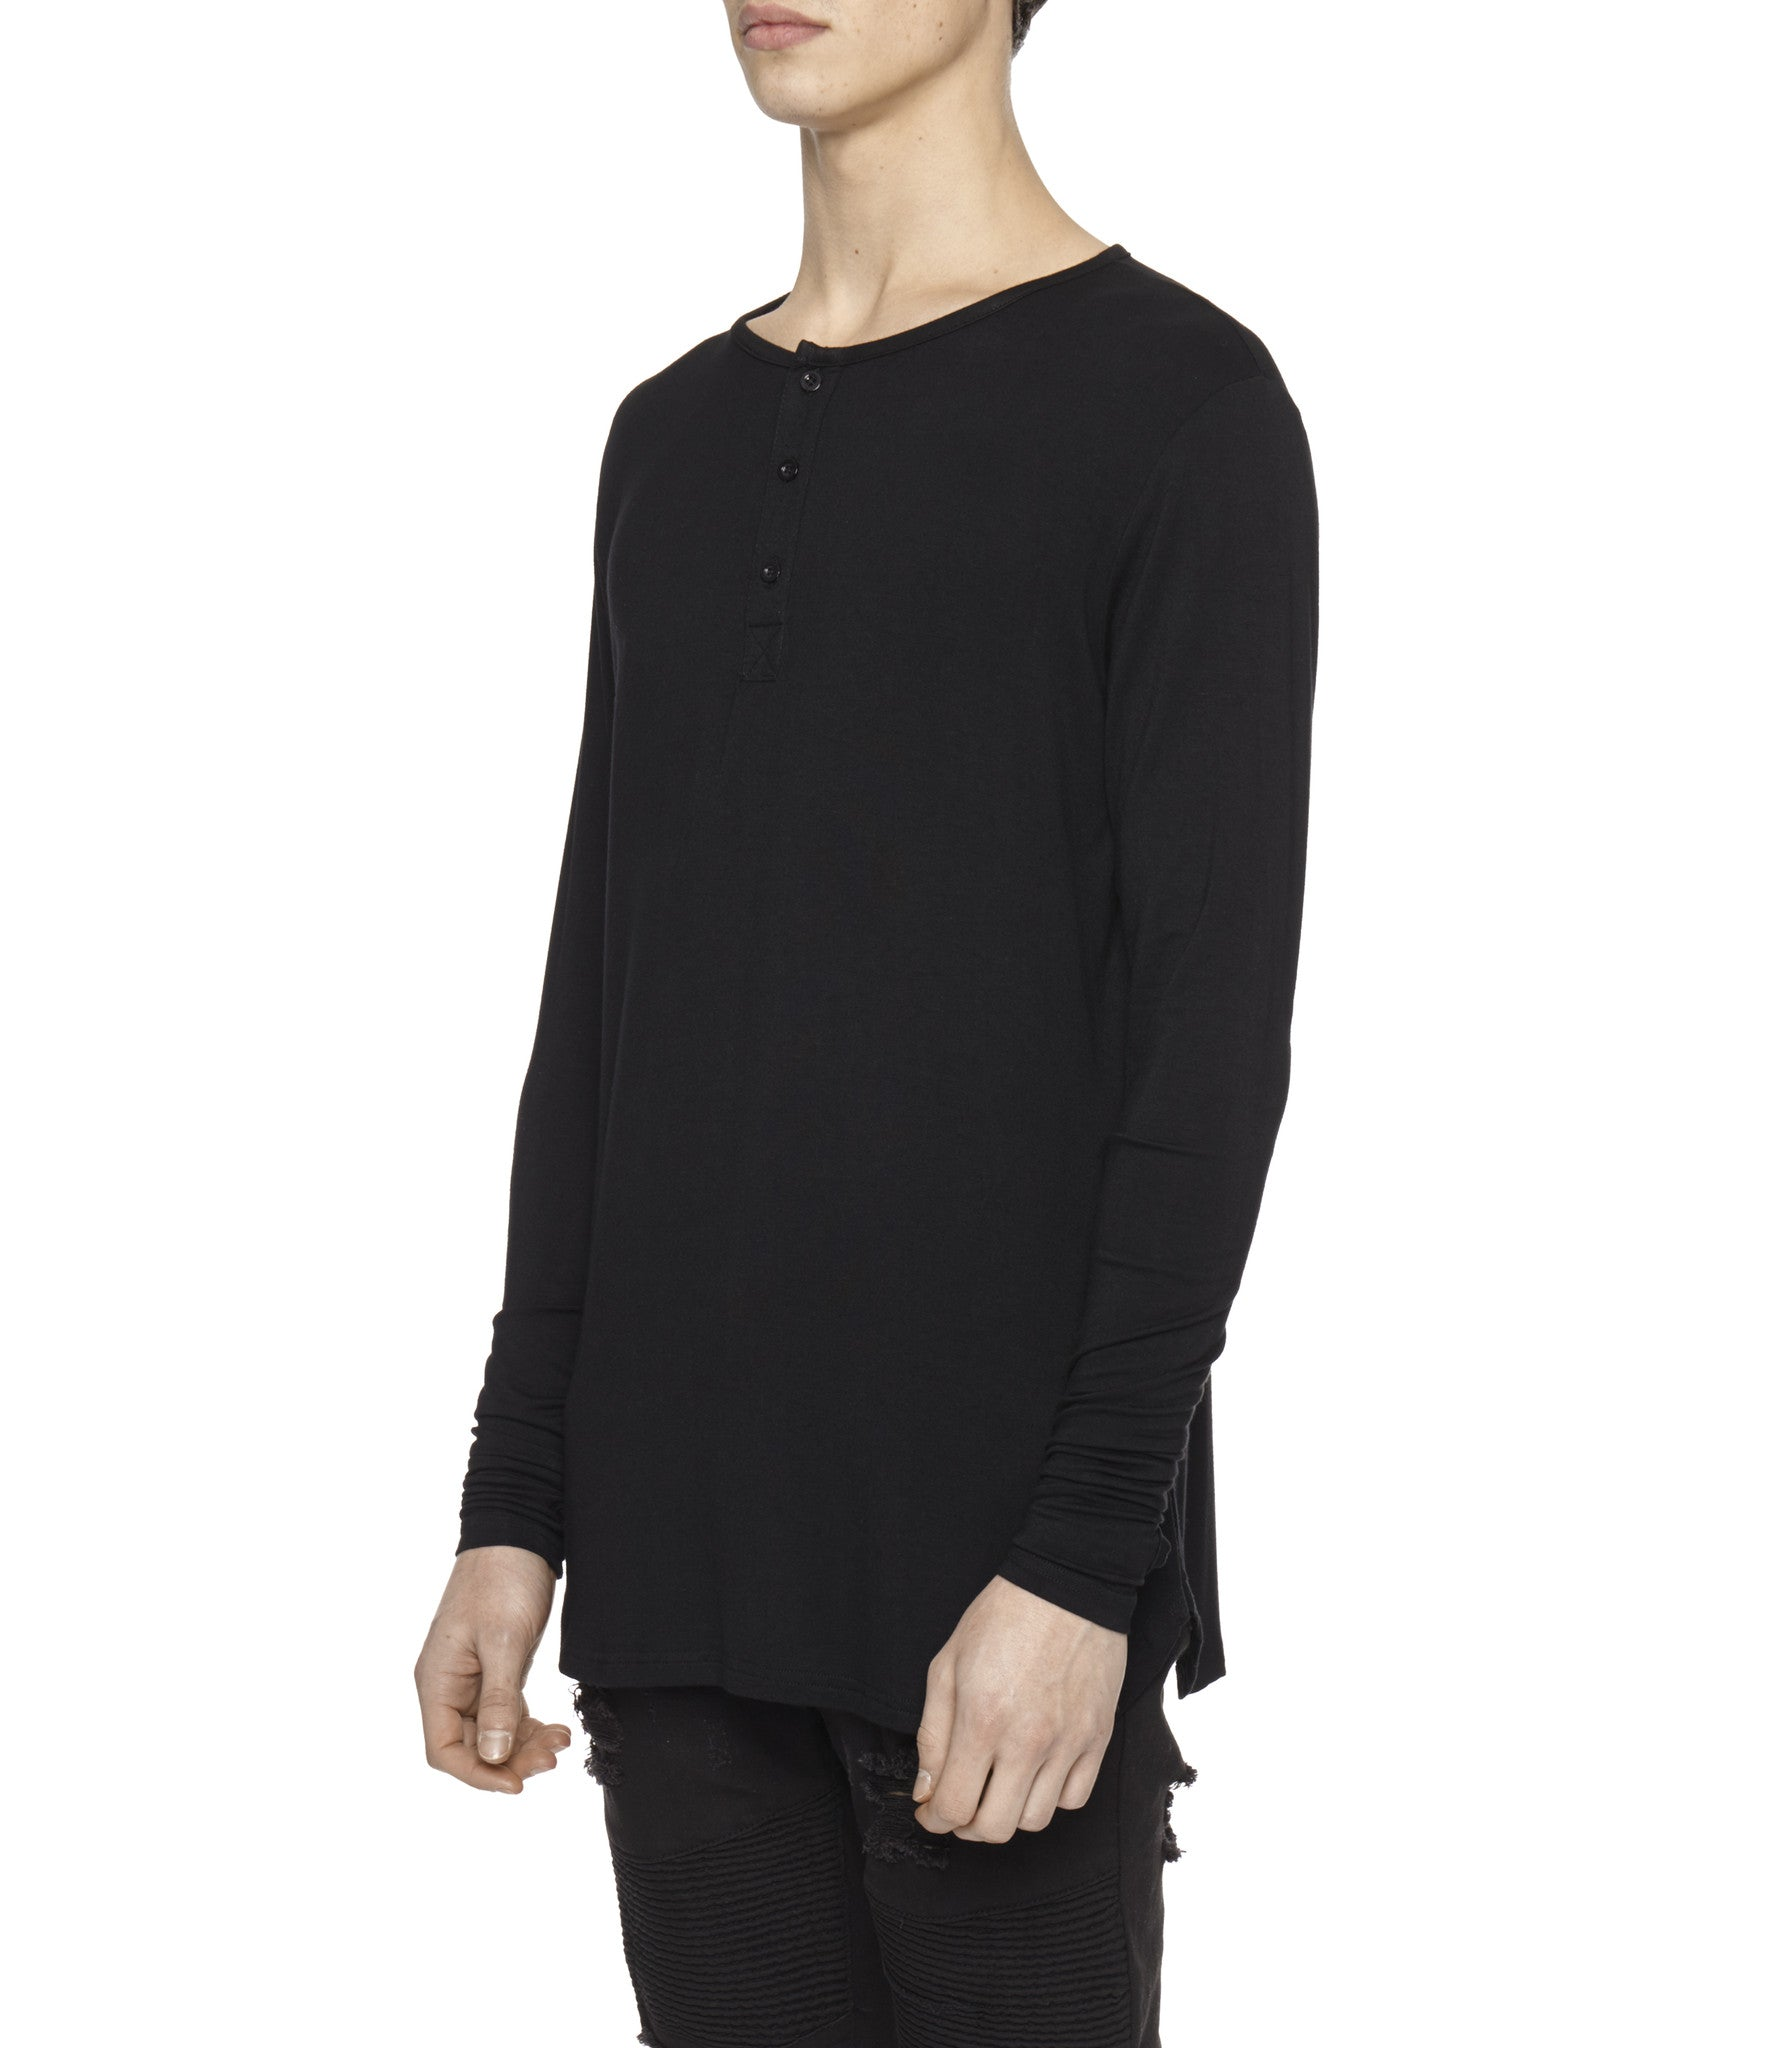 LS264 Under Layer Henley Tee - Black - underated london - underatedco - 4